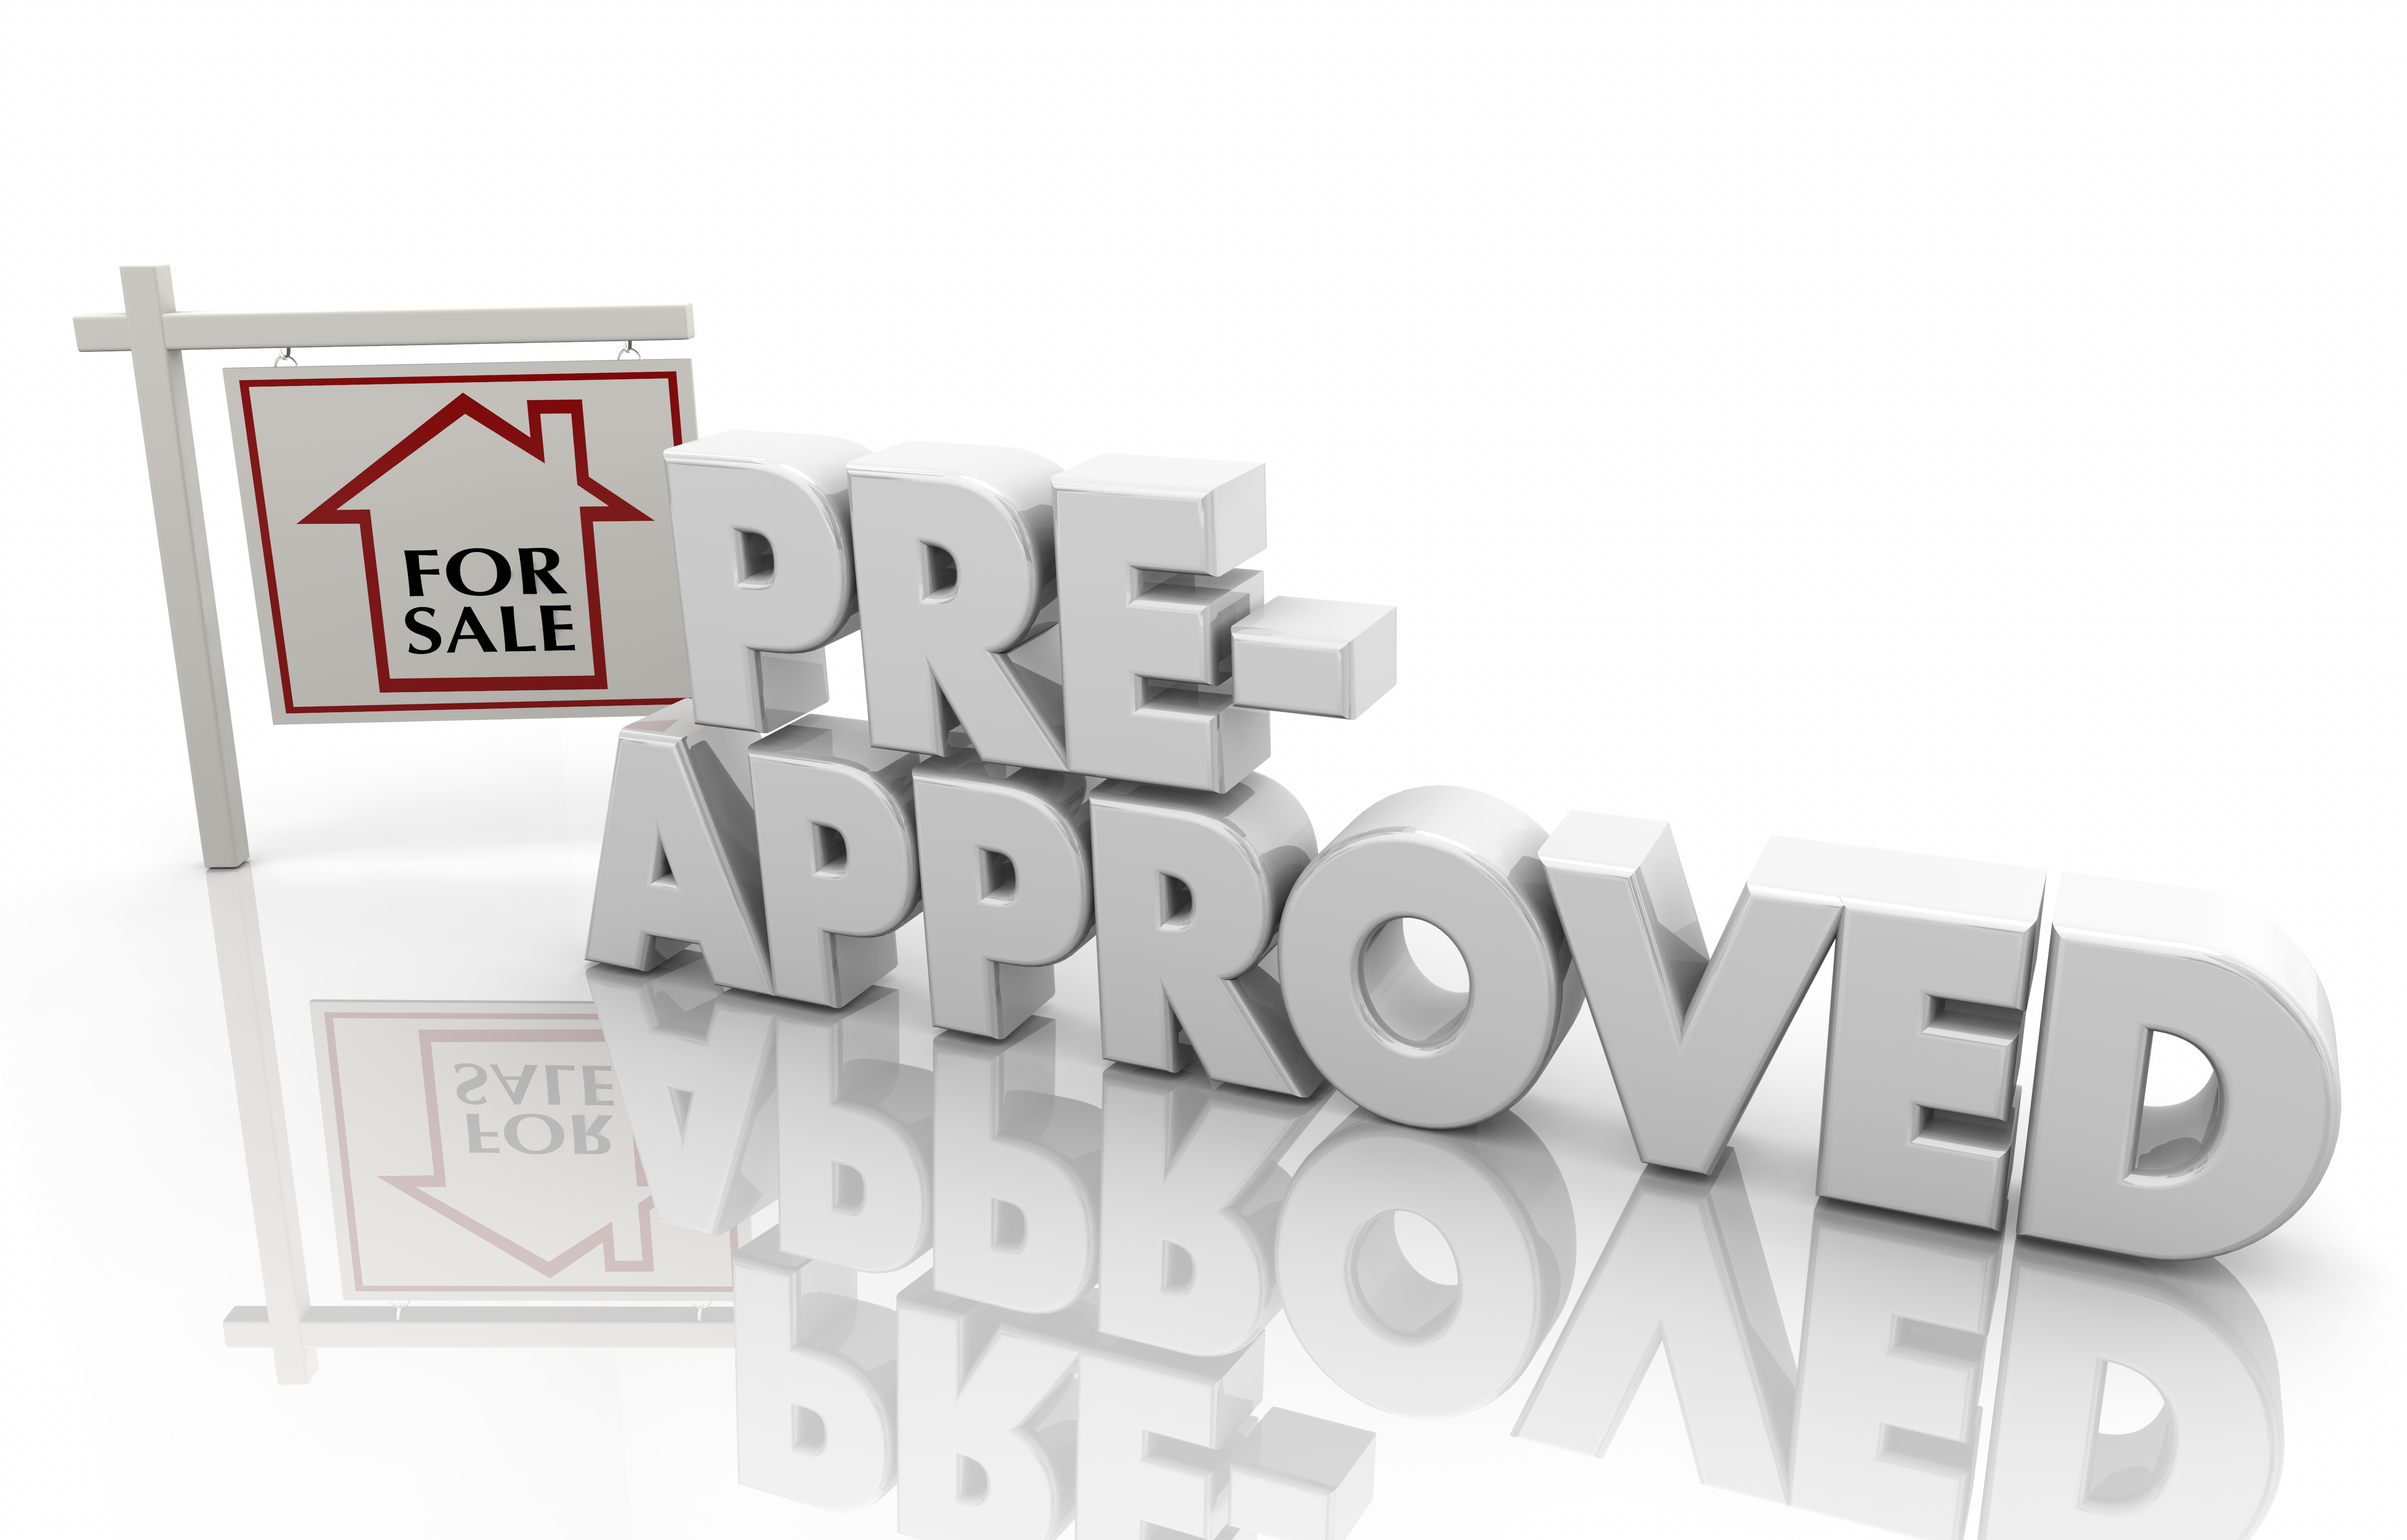 Pre-approval for a home loan before you find a house can greatly improve your odds of getting the home you want.